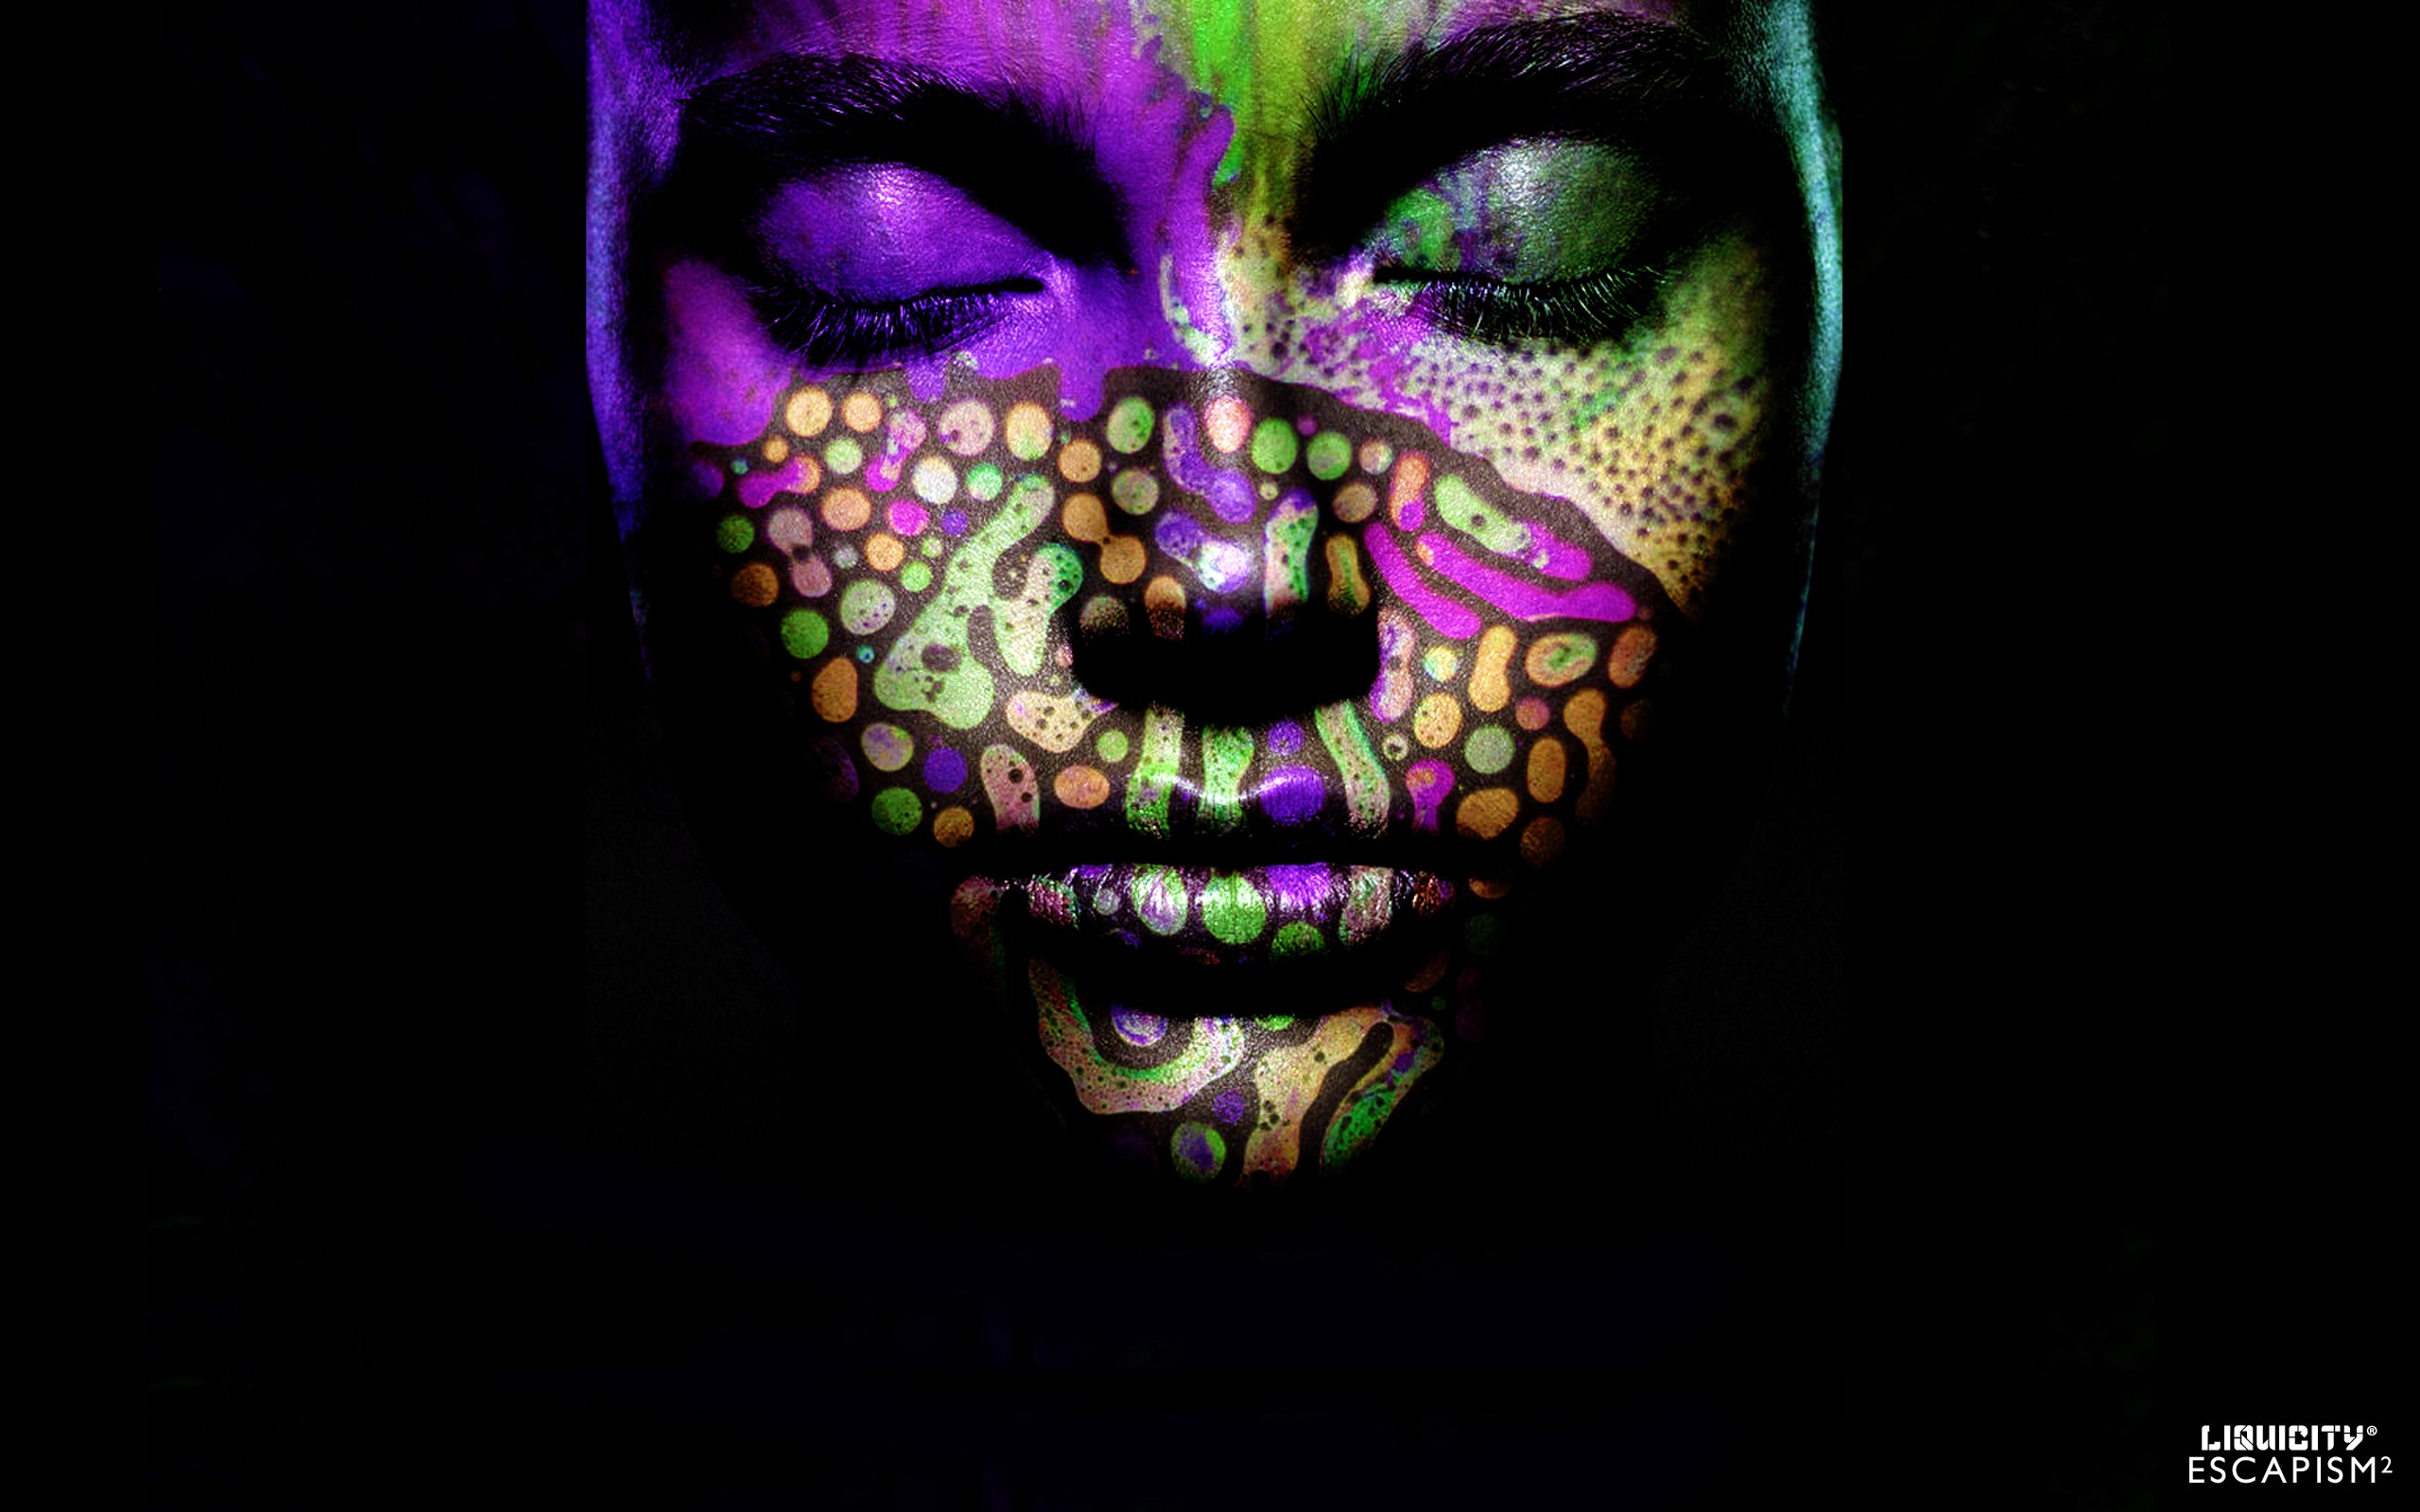 General 2560x1600 Liquicity liquid drum and bass drum and bass colorful face dark closed eyes makeup body paint simple background women black background